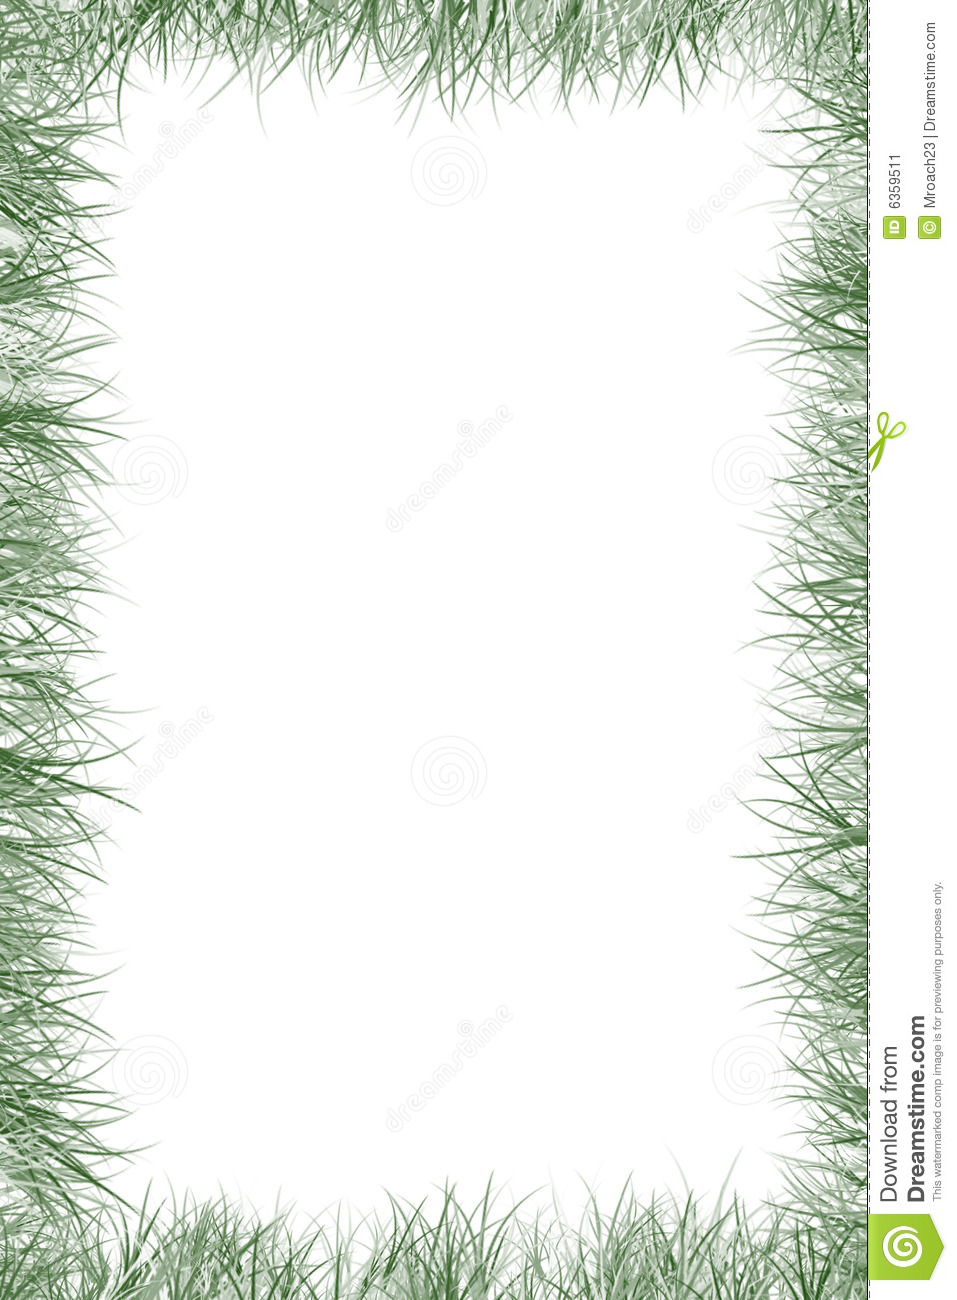 Grass border stock illustration image of border white for Best grasses for borders